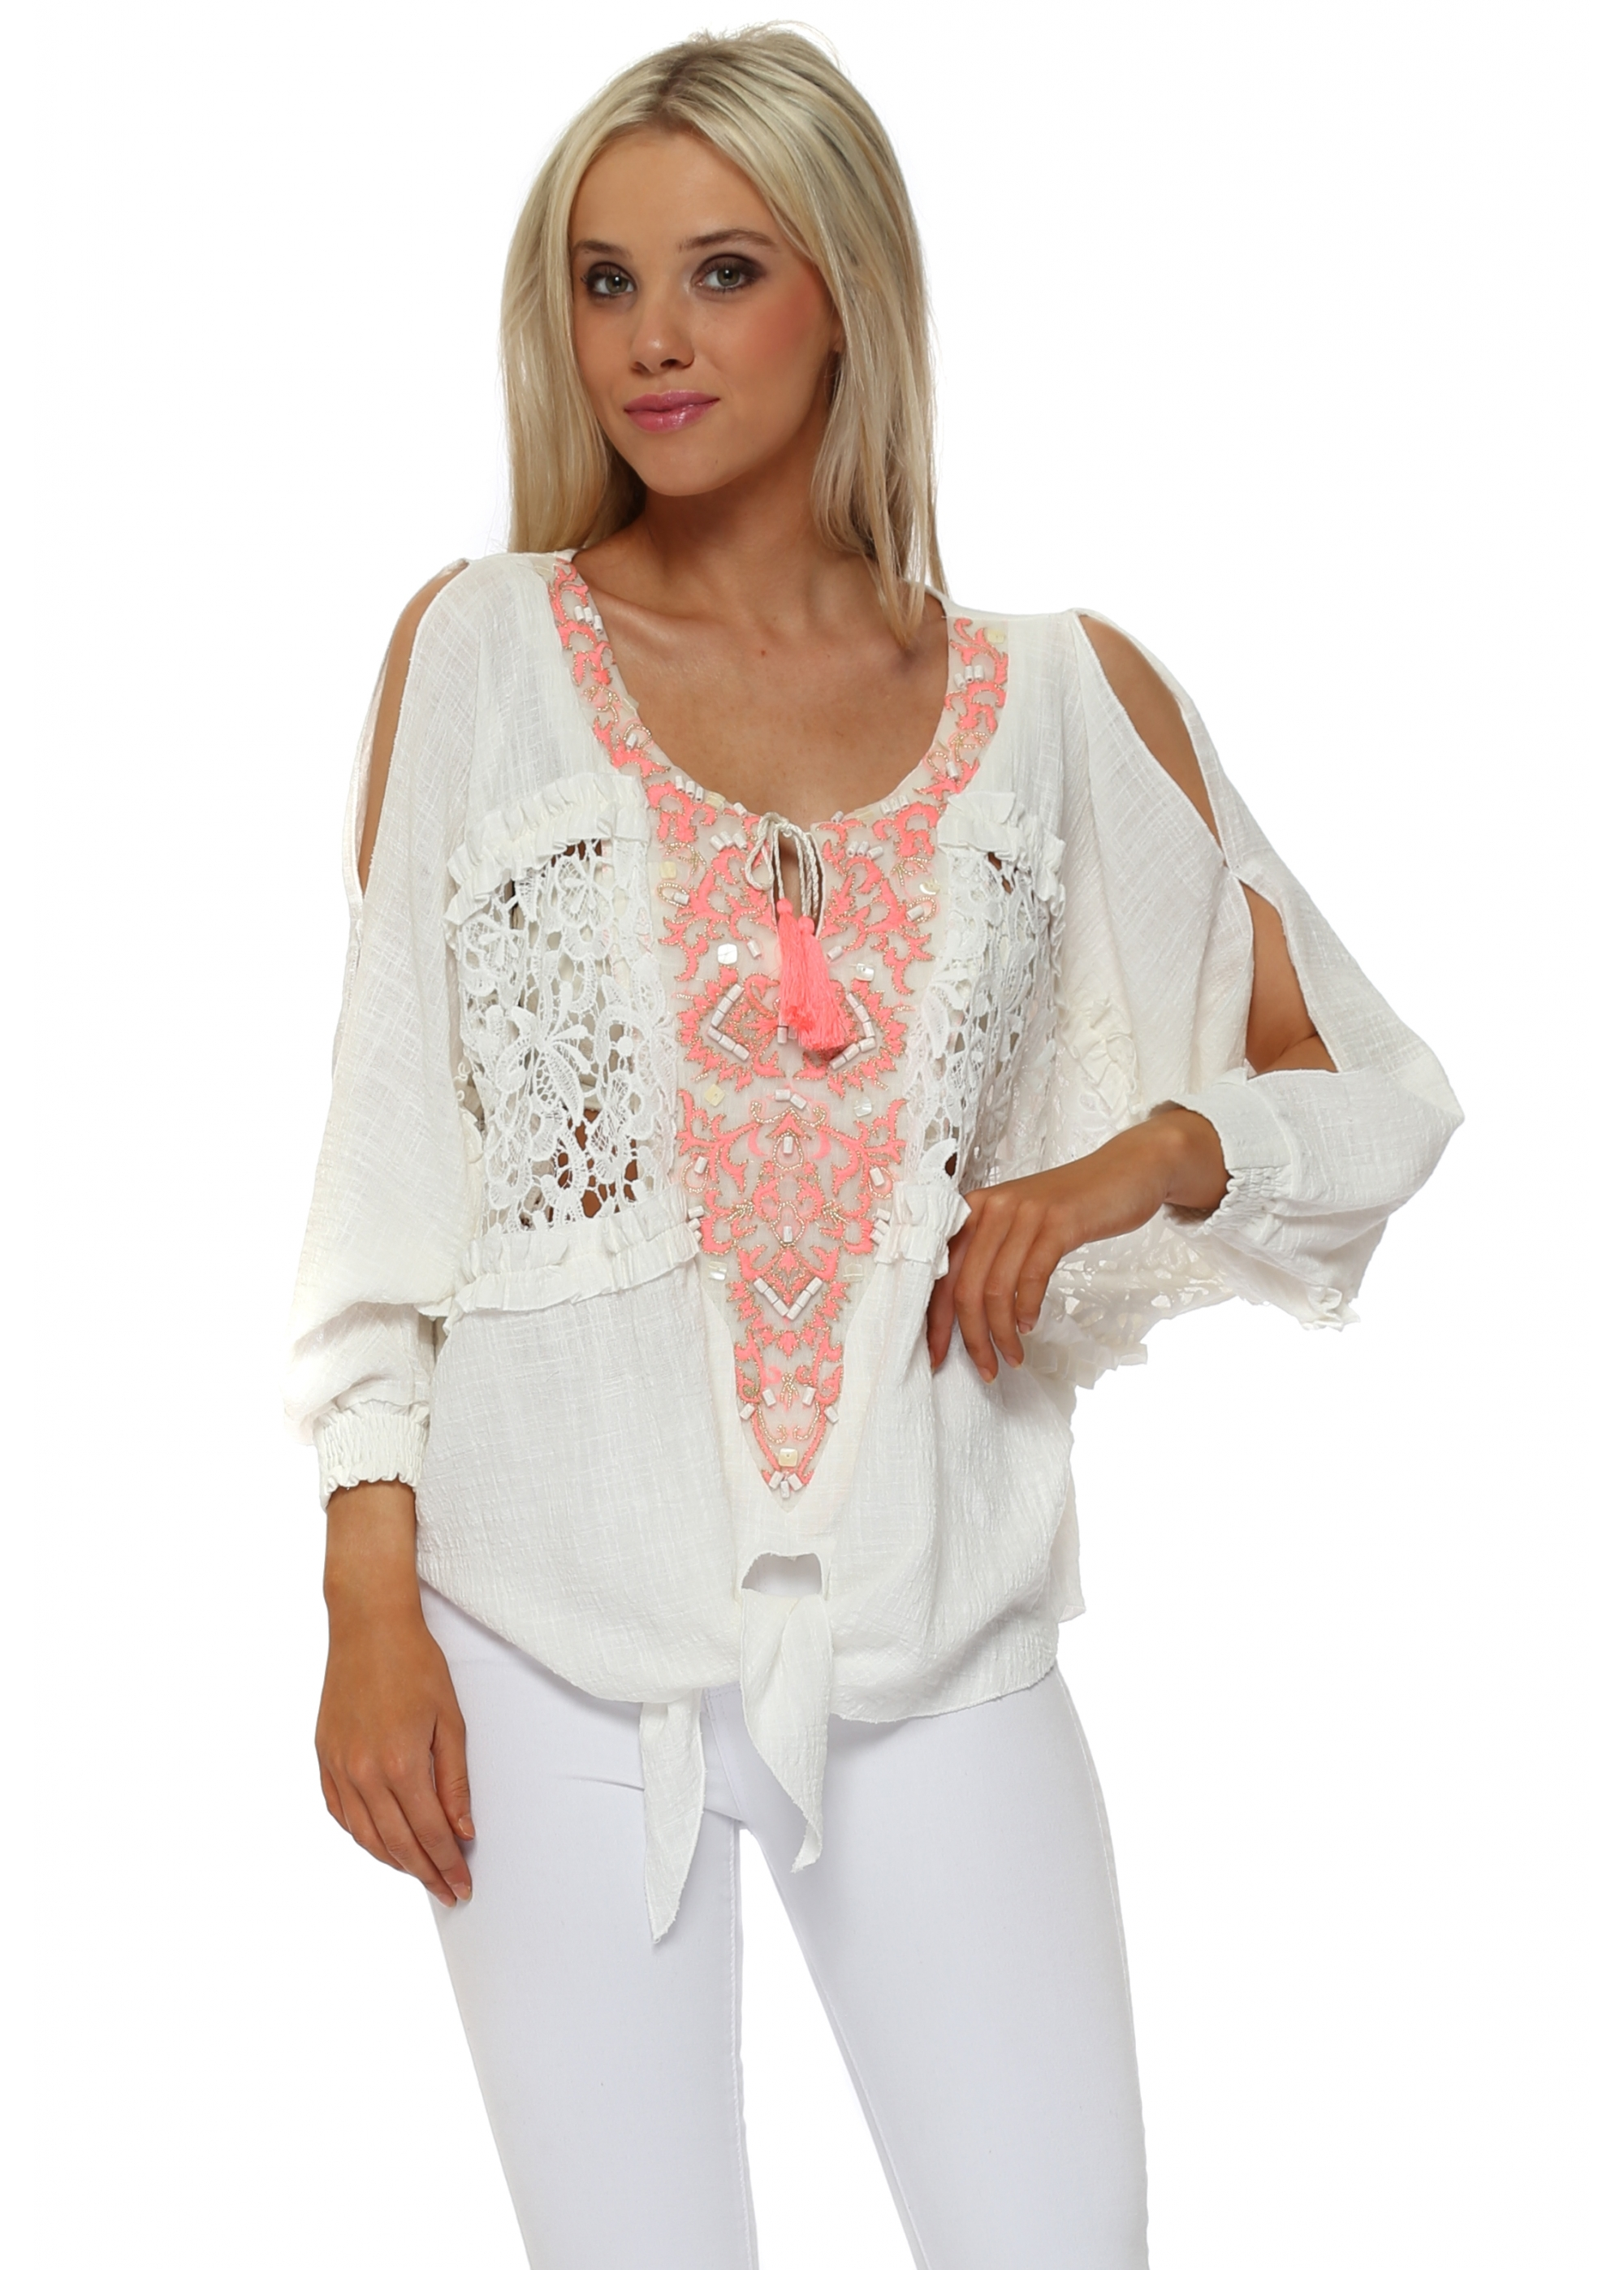 a6a25e5f301896 Laurie   Joe Cream Lace Short Sleeved Tie Top